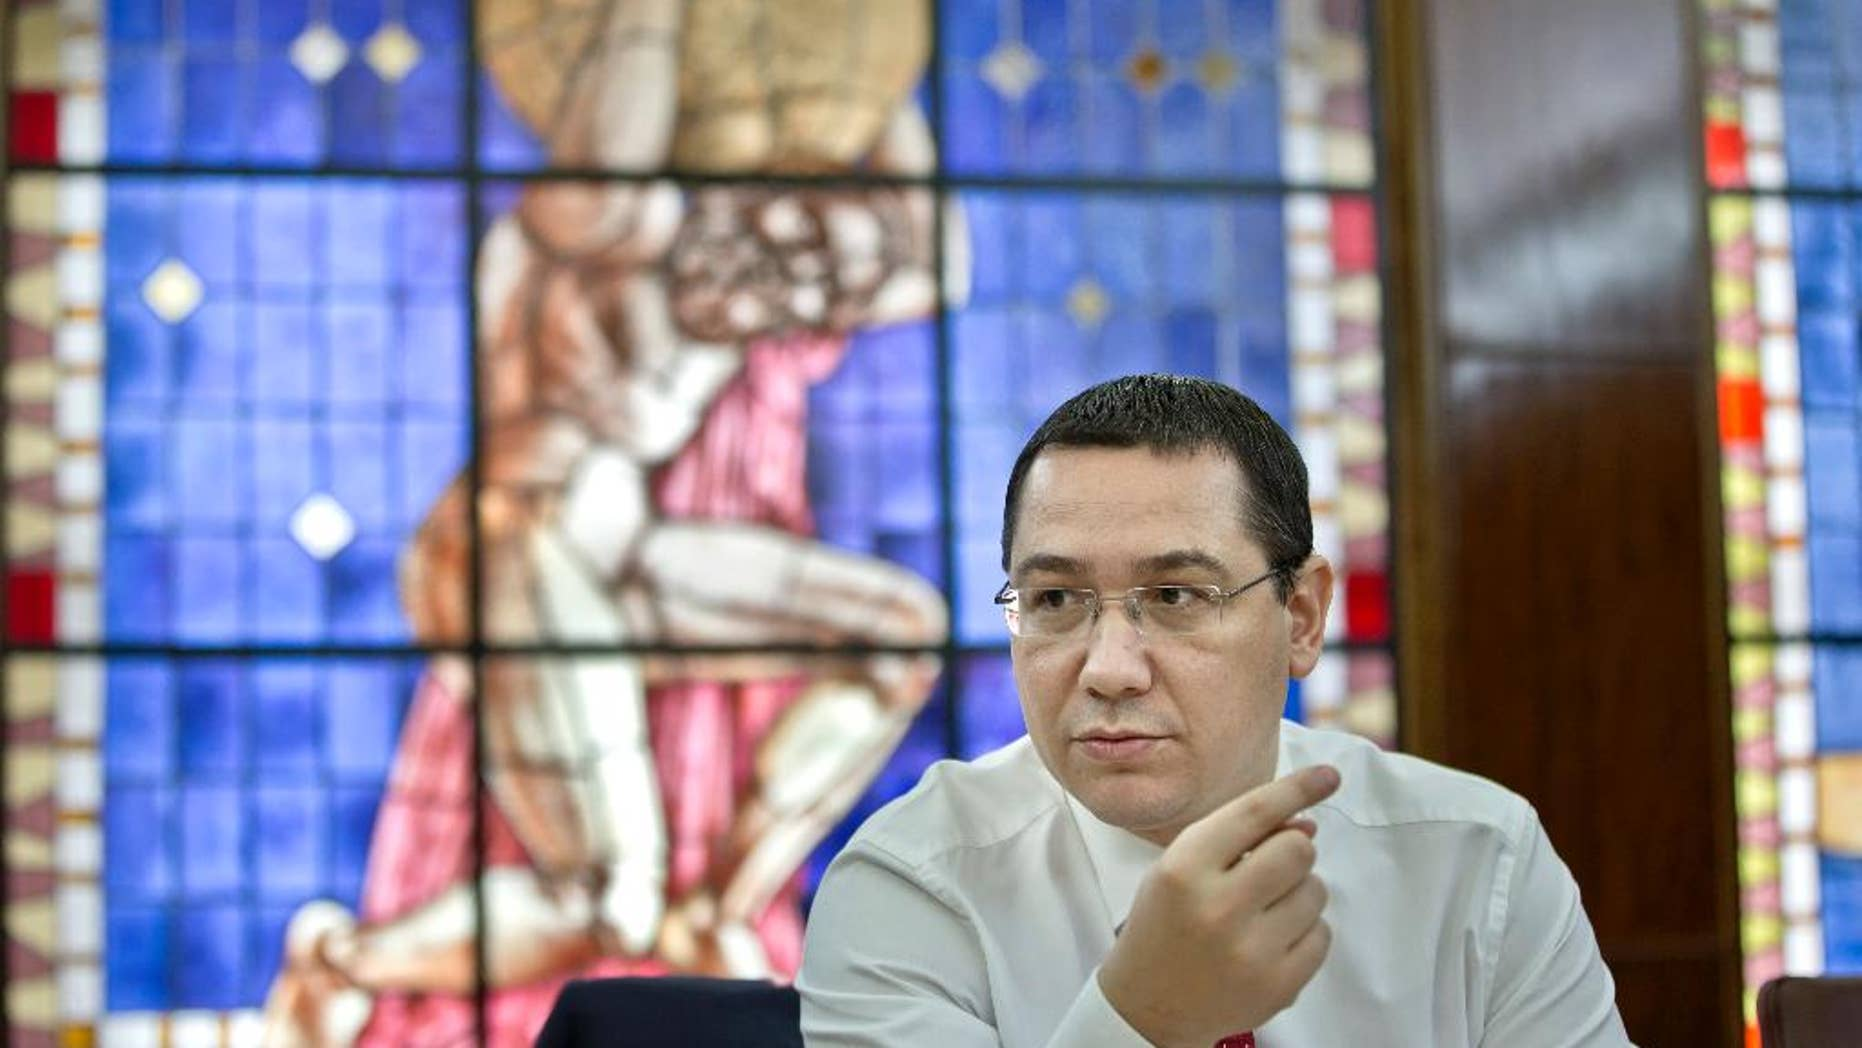 Romanian Prime Minister Victor Ponta gestures during a meeting with the foreign media in Bucharest, Romania, Thursday, May 7, 2015. Romania's prime minister says the European Union has suspended 1 billion euros ($1.13 billion) in funding for Romanian projects over allegations of corruption and irregularities. (AP Photo/Vadim Ghirda)